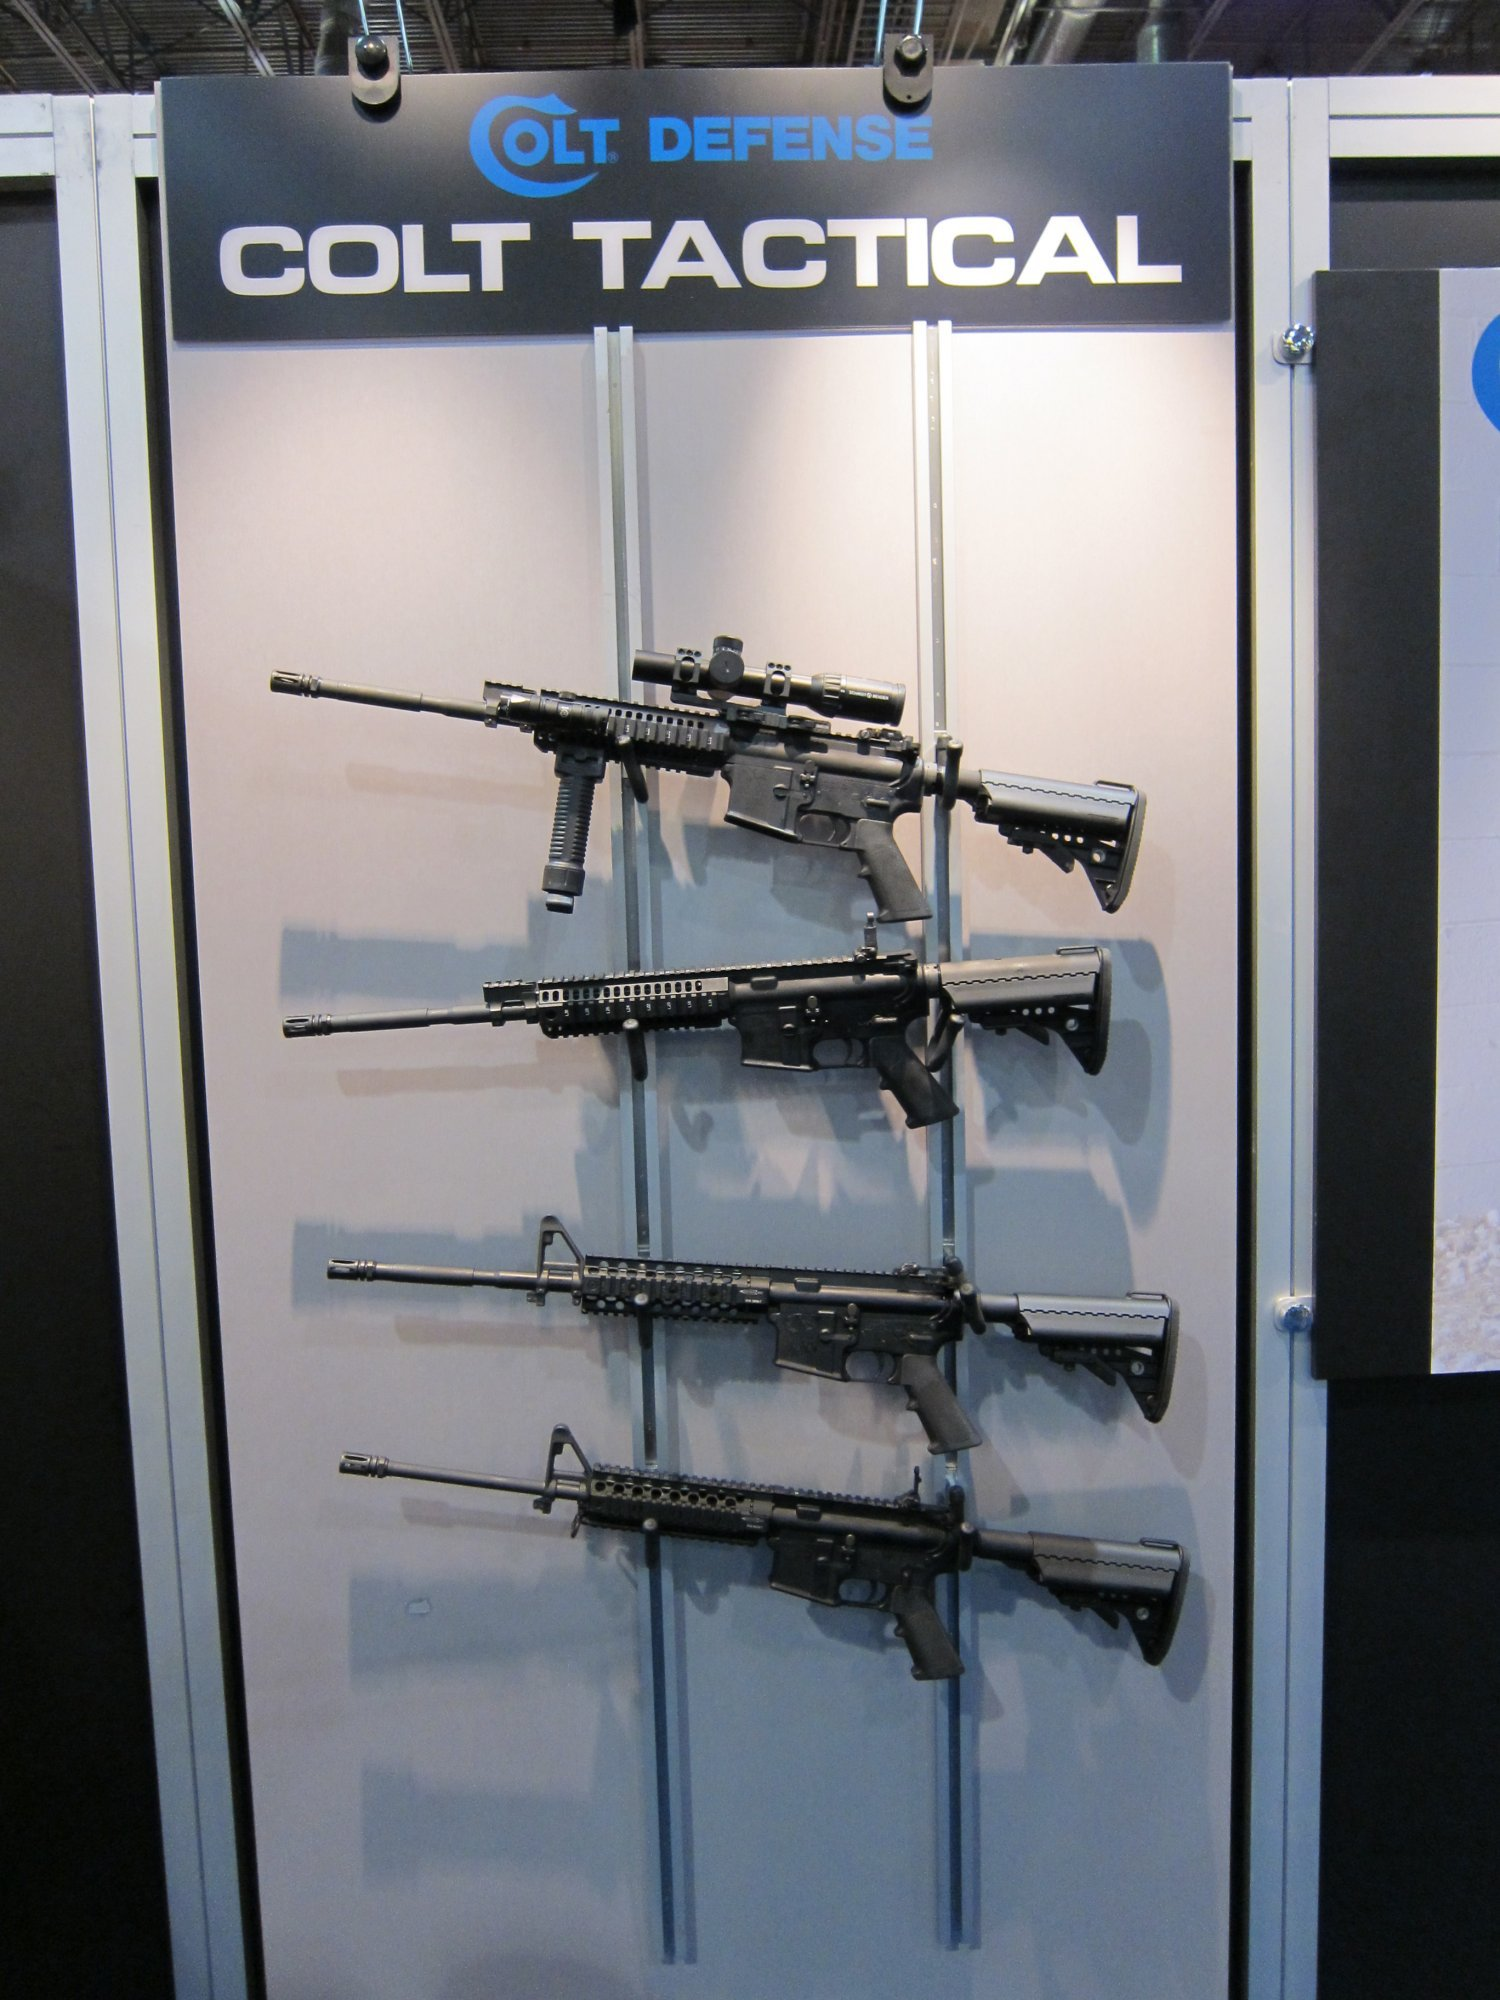 shot show 2010 colt tactical ar carbines 1 <!  :en  >Colt Defense Launches Colt Tactical Carbines/Rifles for Civilian Tactical Shooters at SHOT Show 2010: Tactical Guns Accessorized for Intensive Tactical Training<!  :  >